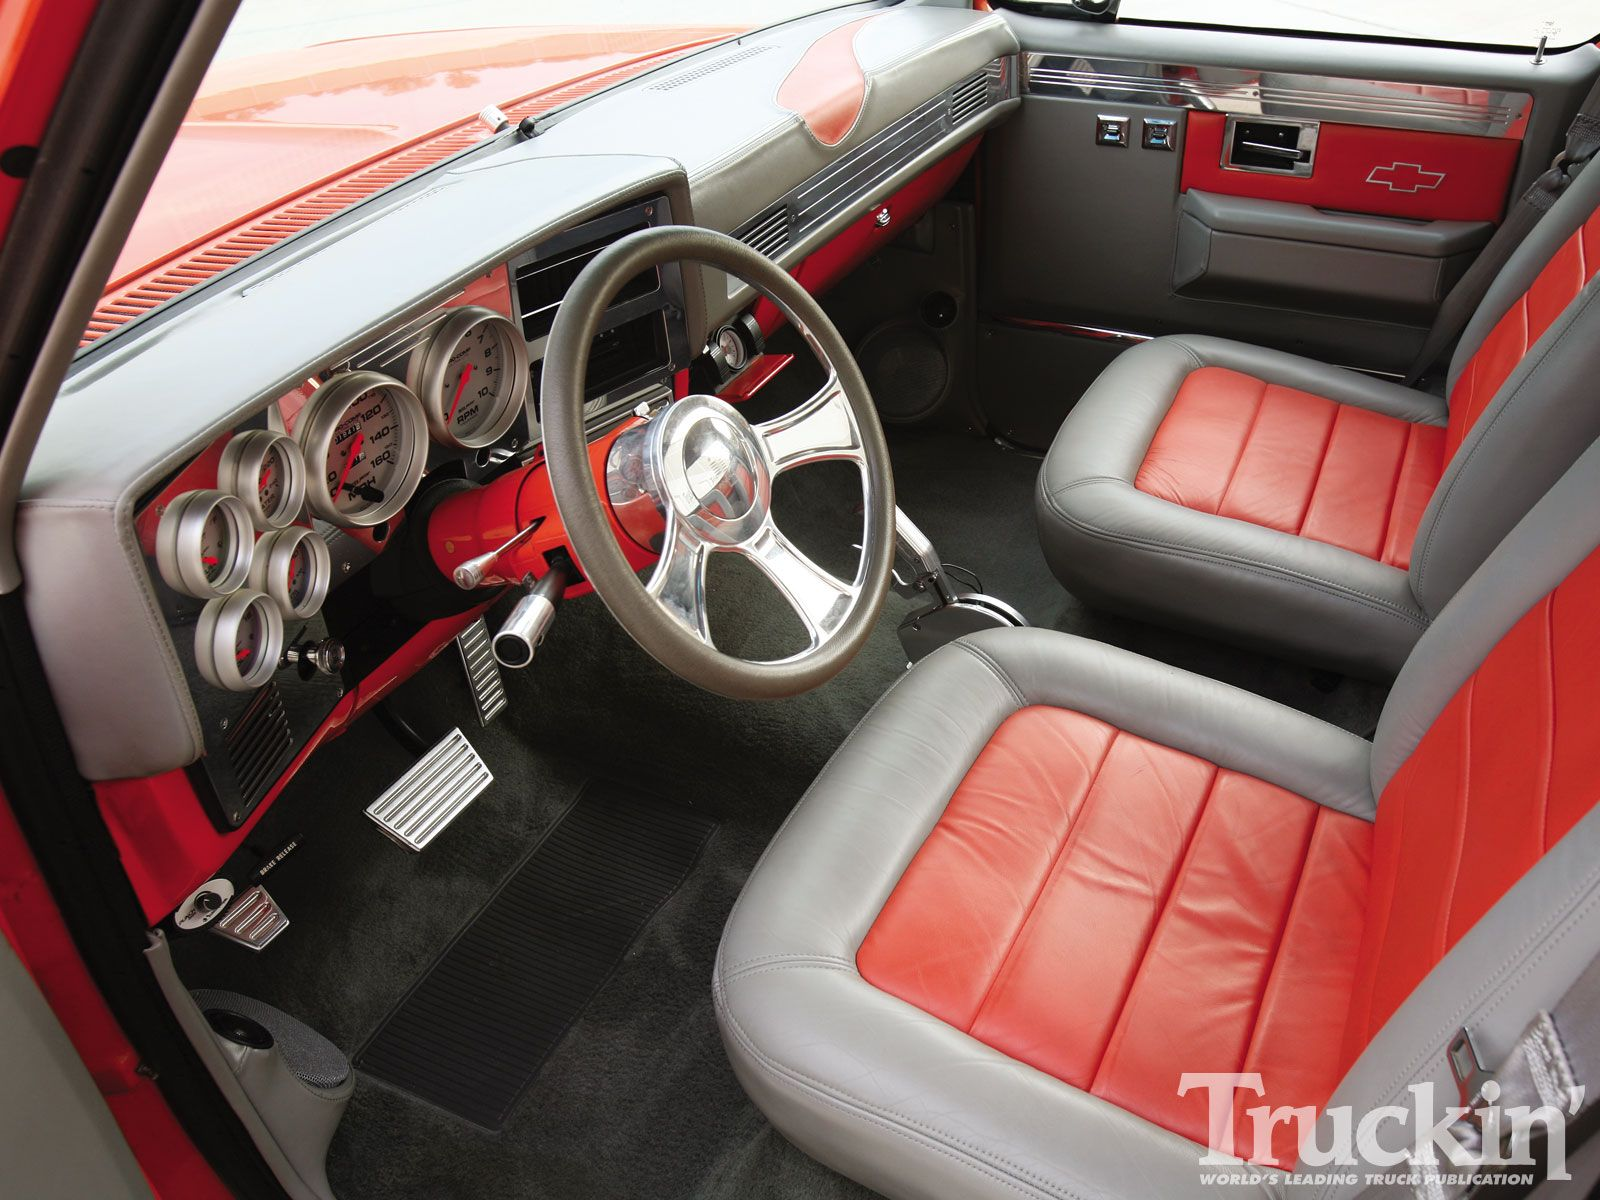 1986 chevy truck interior google search chevy trucks pinterest truck interior interiors for 1980 chevy truck interior parts